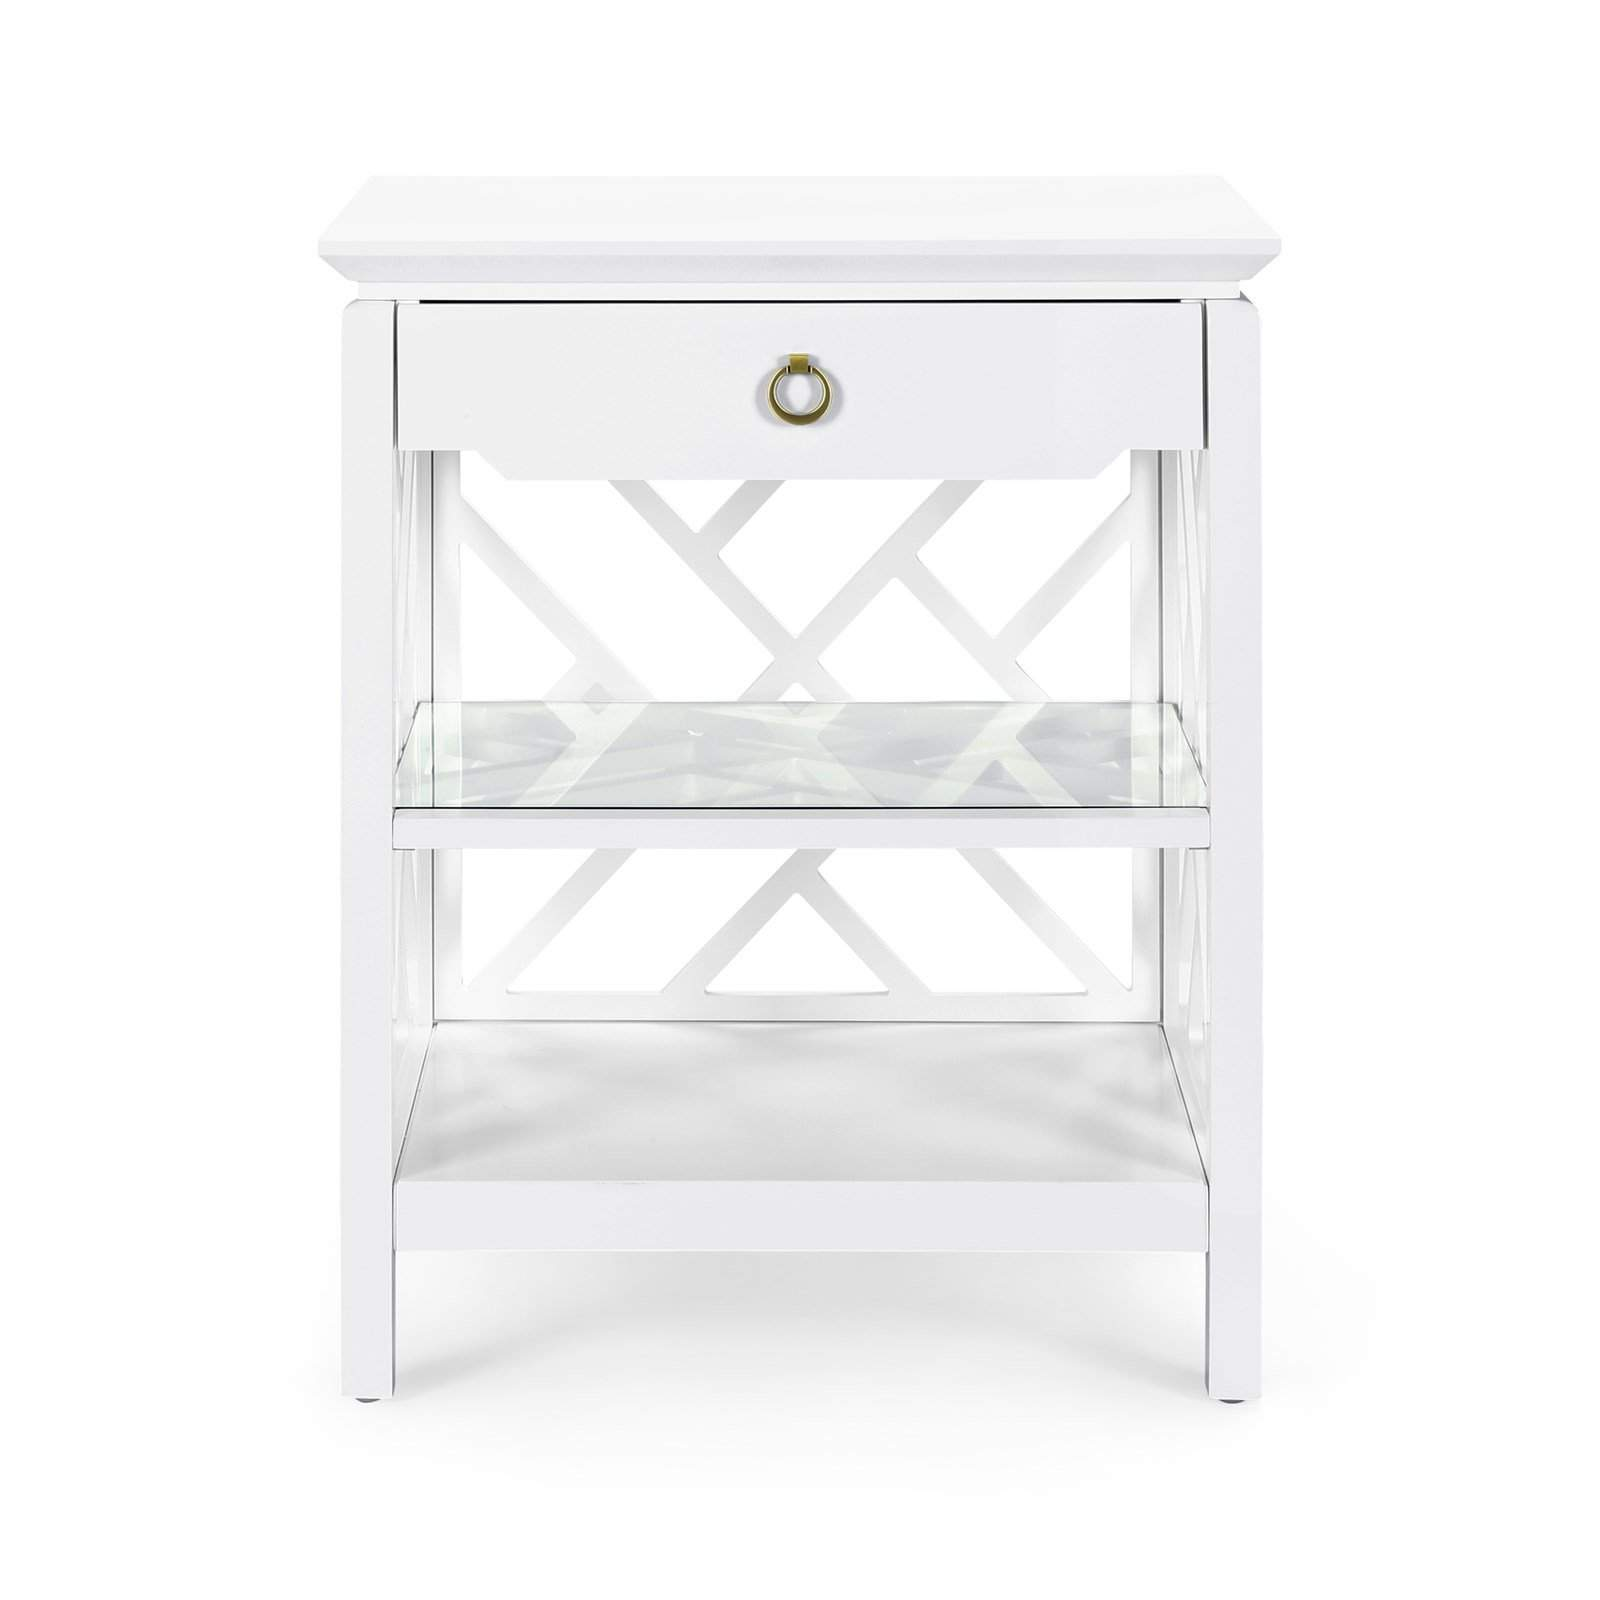 bungalow nantucket drawer side table white nan fretwork accent blue hand home outdoor drum changing pad tray target square fall tablecloth painted diy chest coffee murphy desk